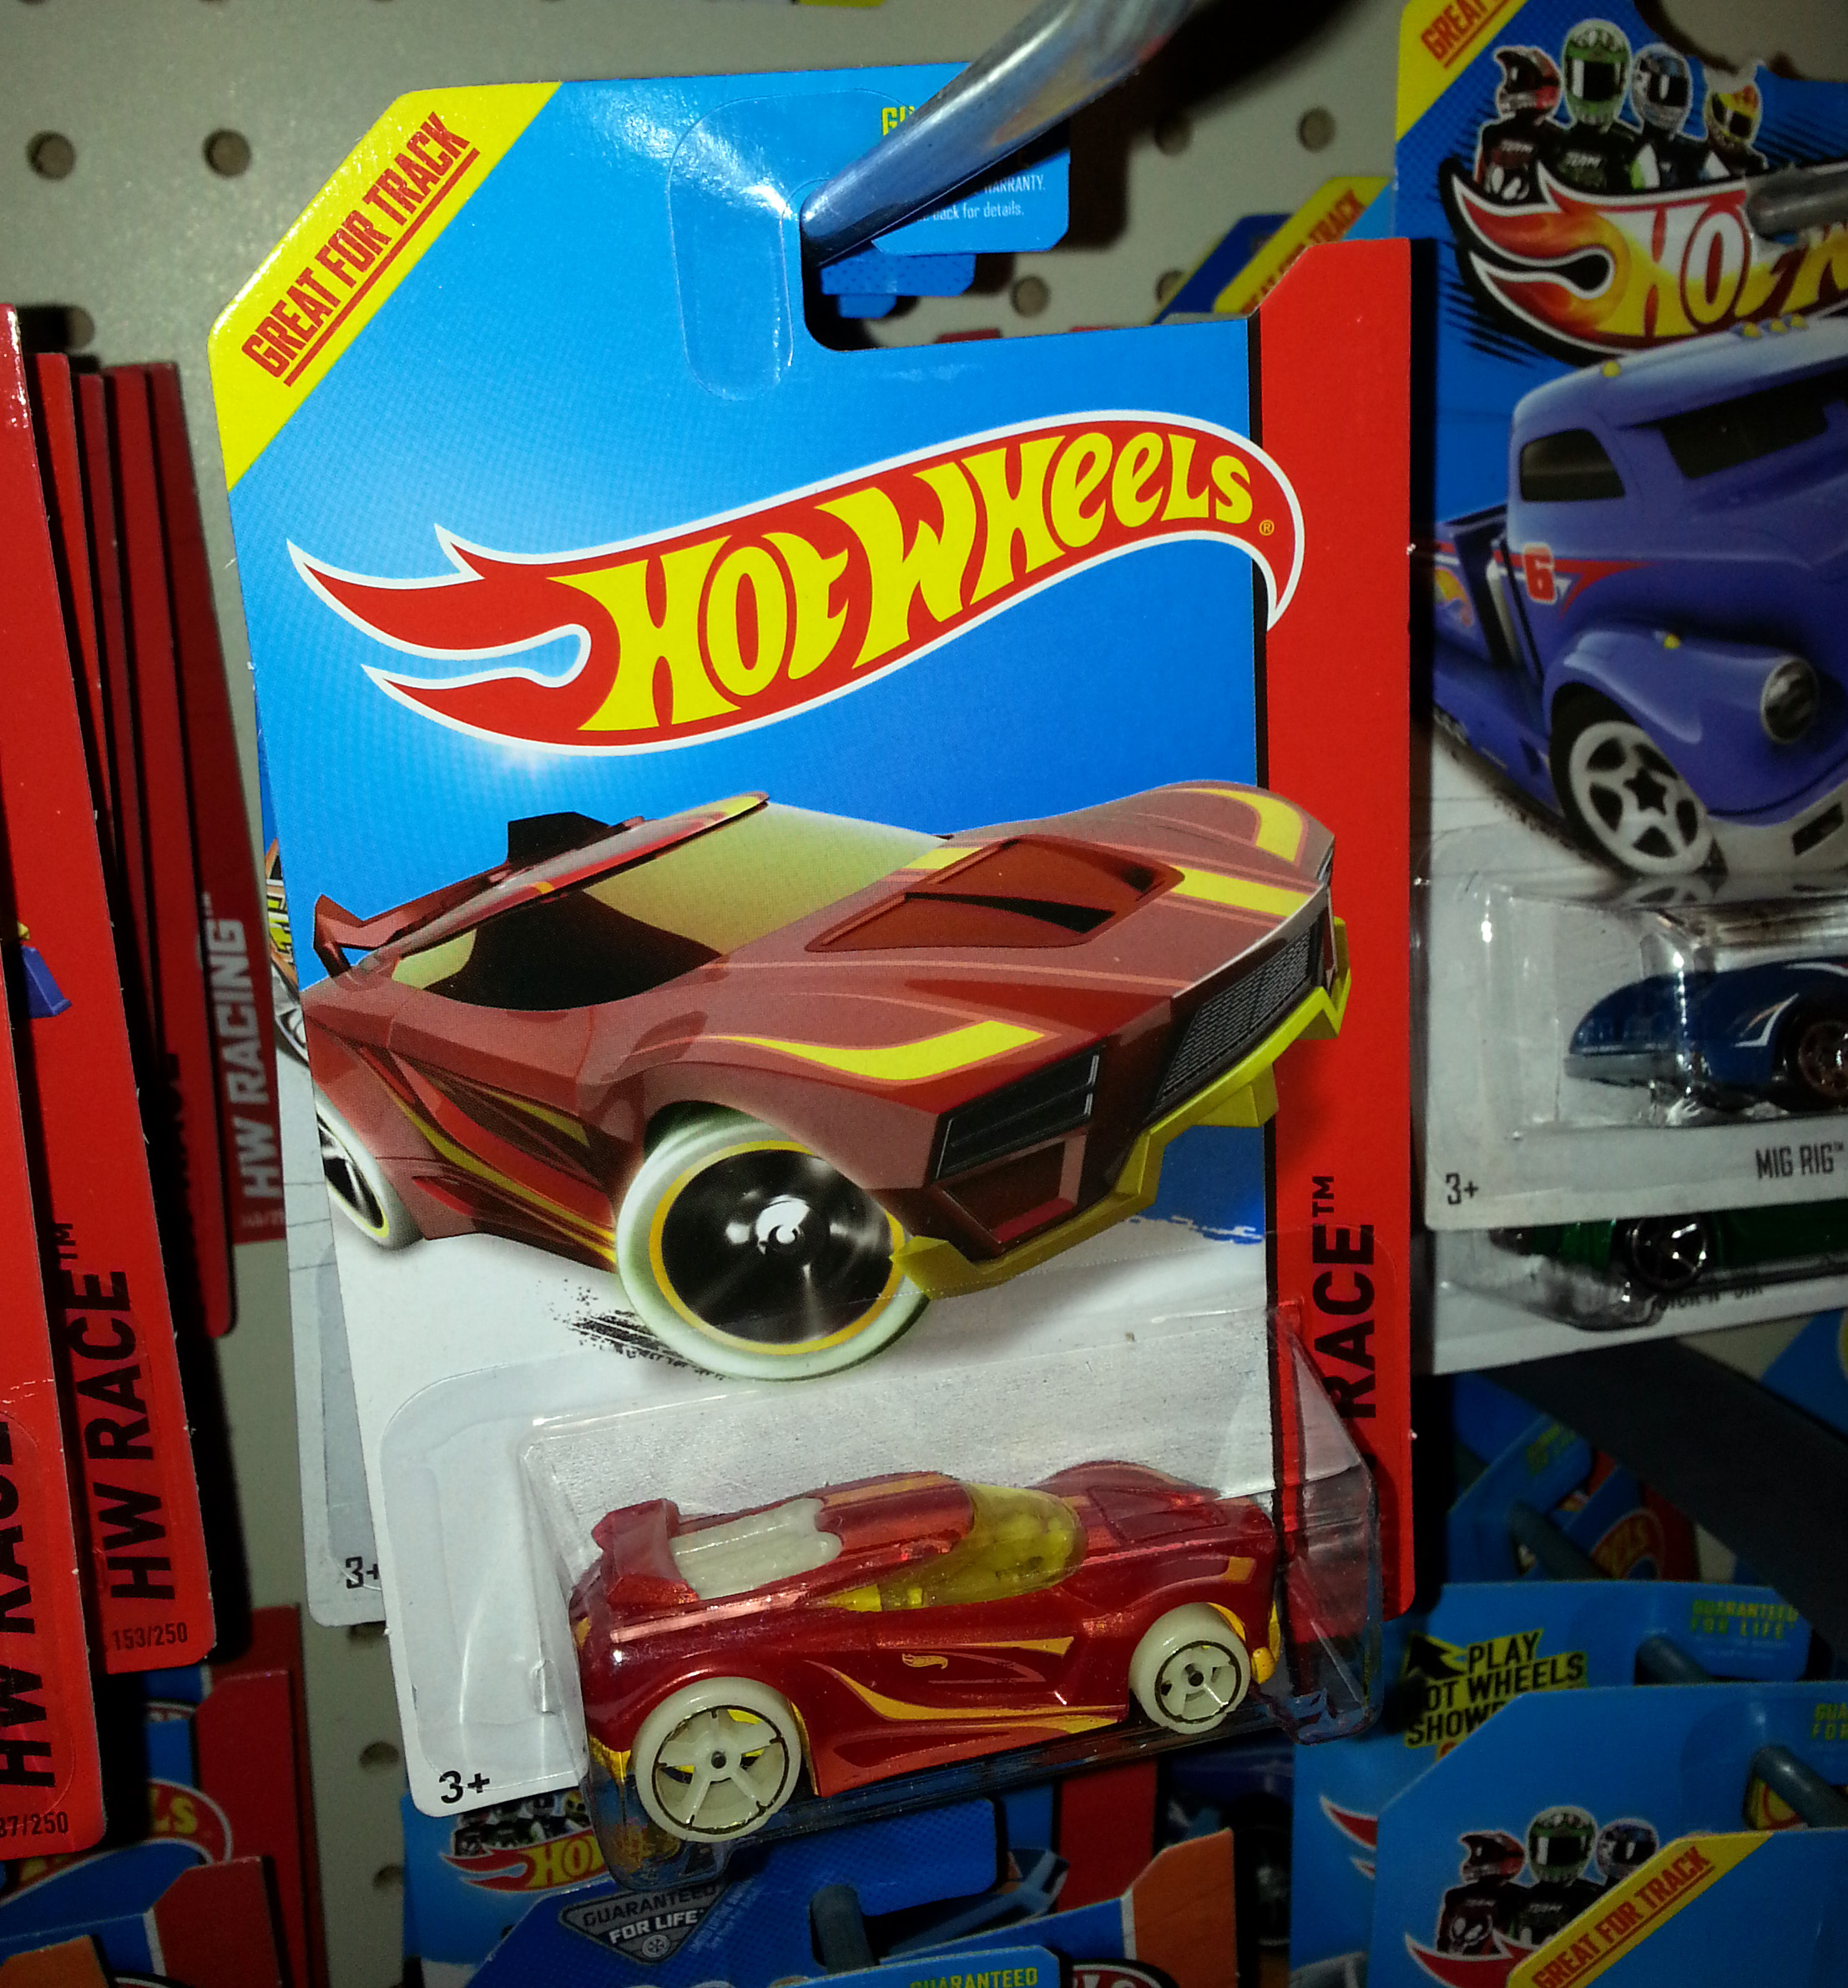 Hot Wheels Sale At Fred Meyer In Seattle .